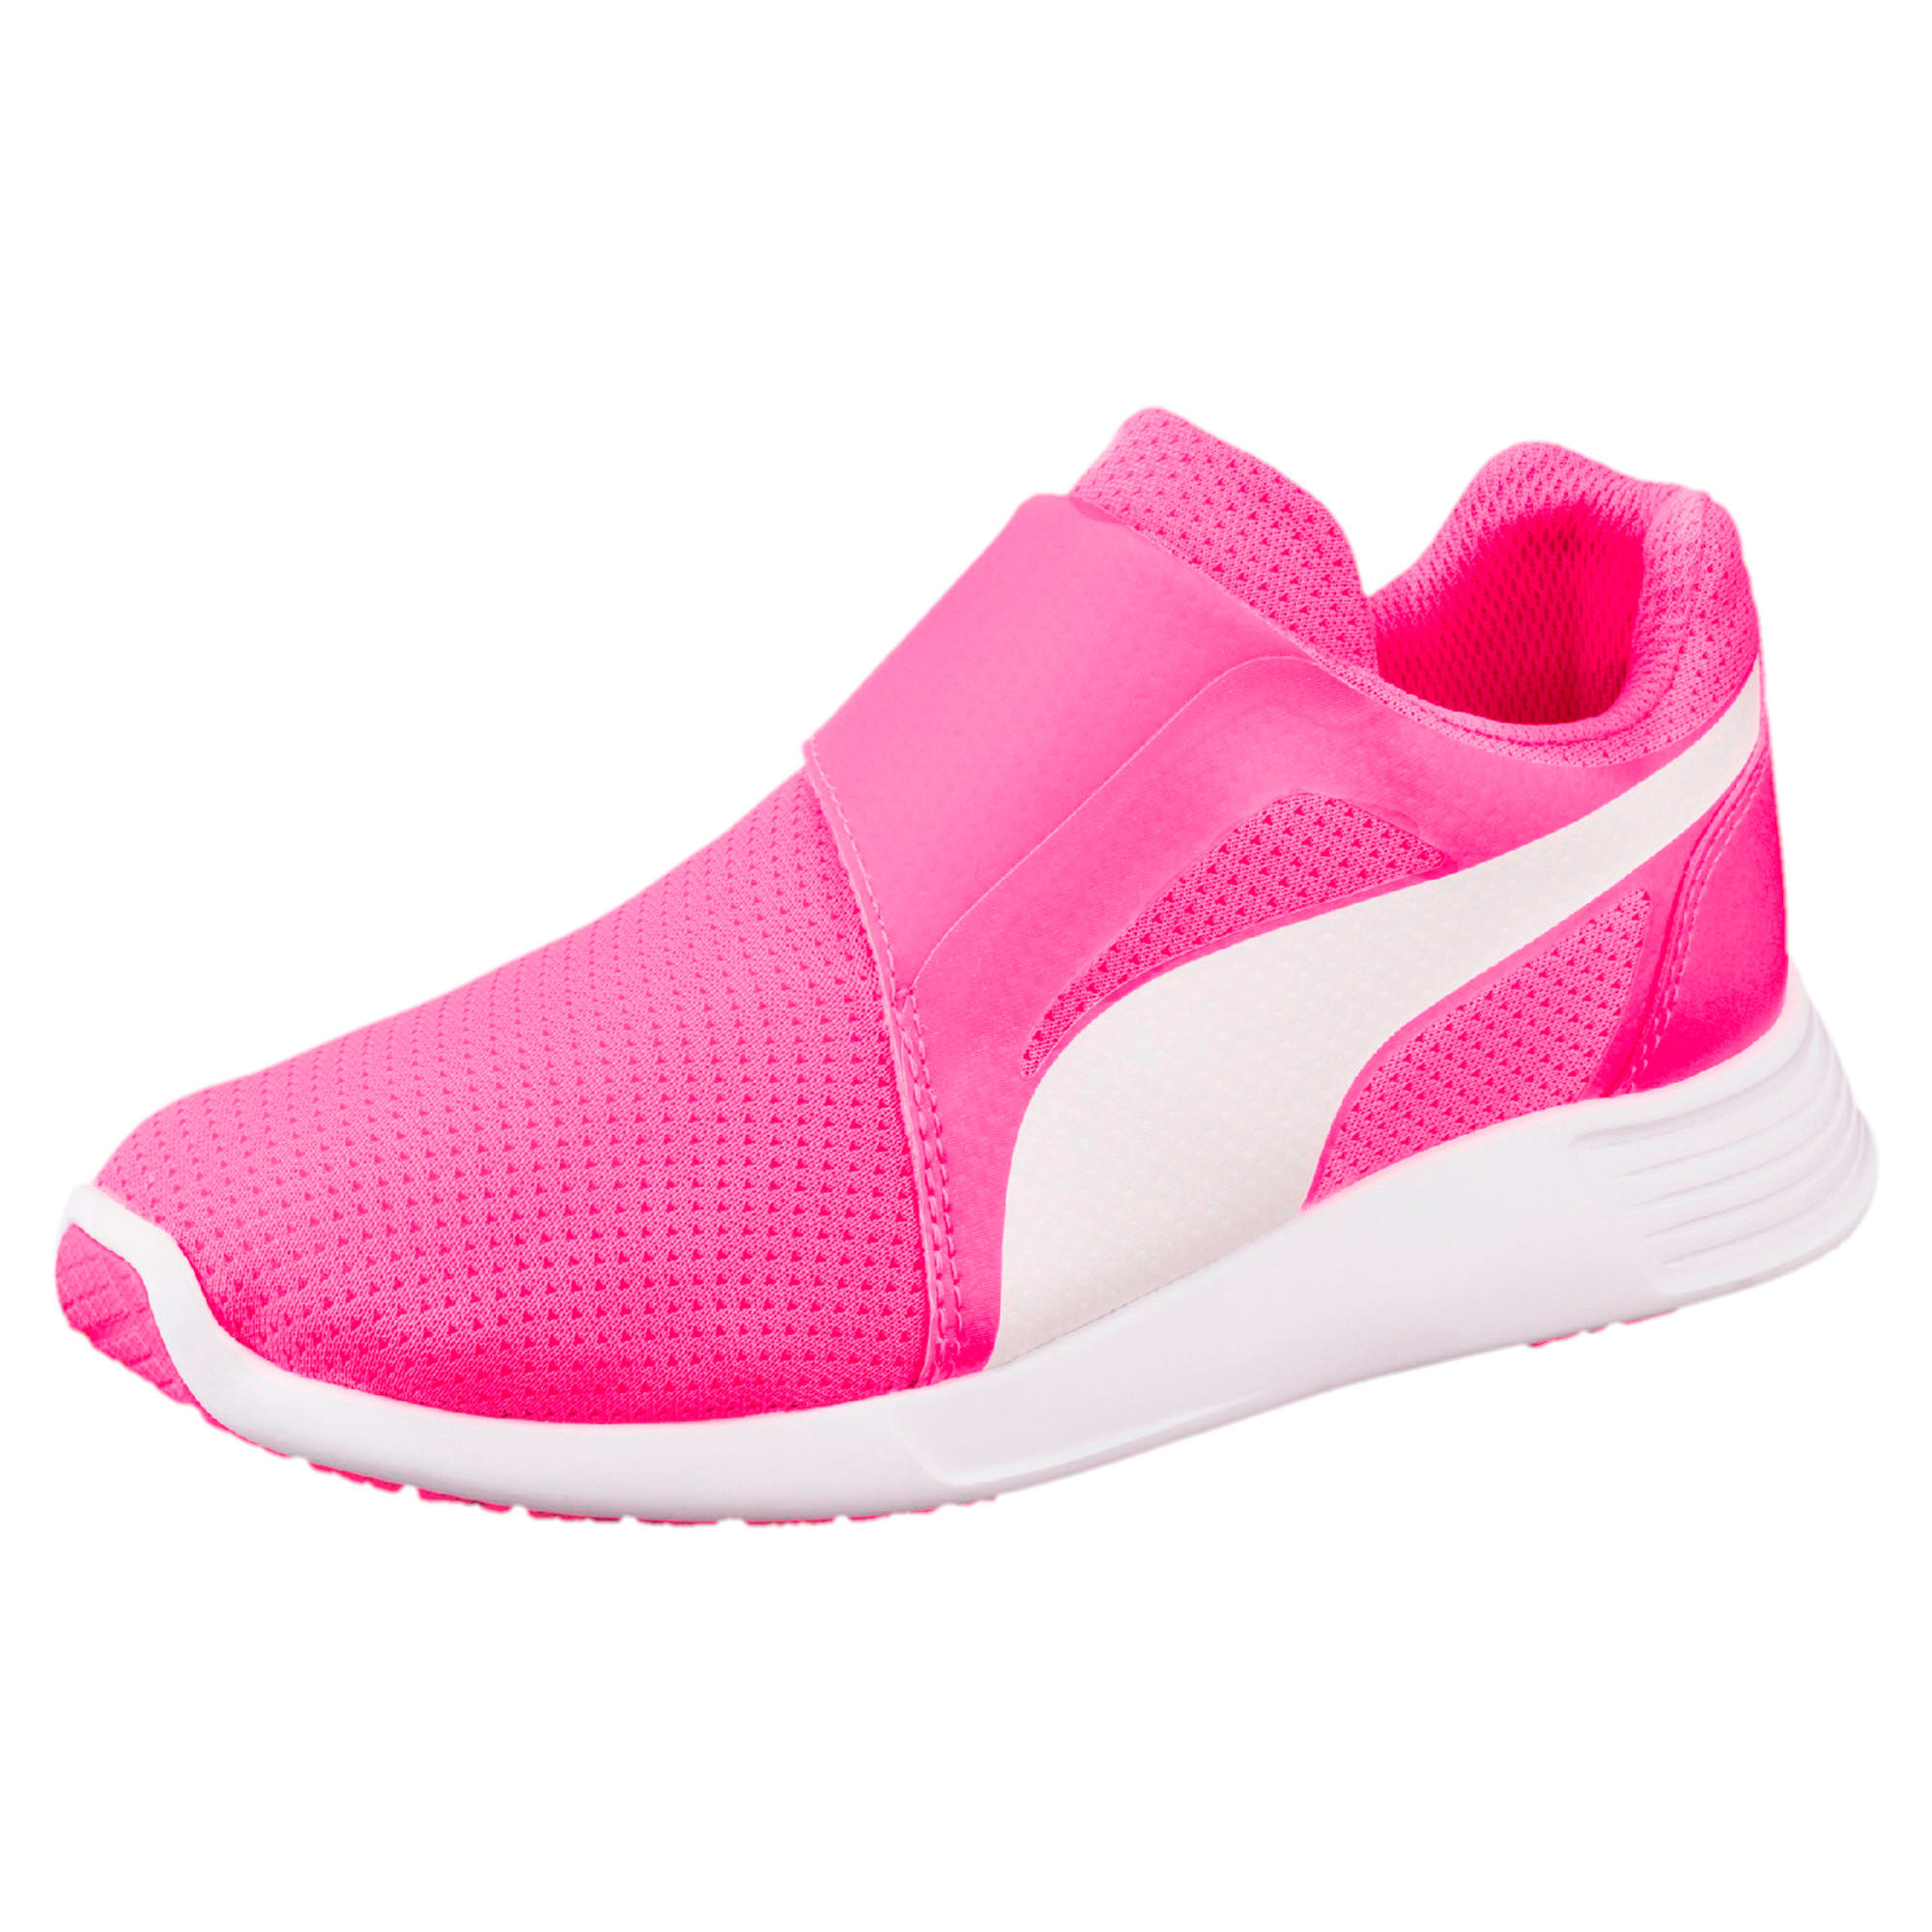 Thumbnail 1 of ST Trainer Evo AC Kids' Trainers, KNOCKOUT PINK-Puma White, medium-IND